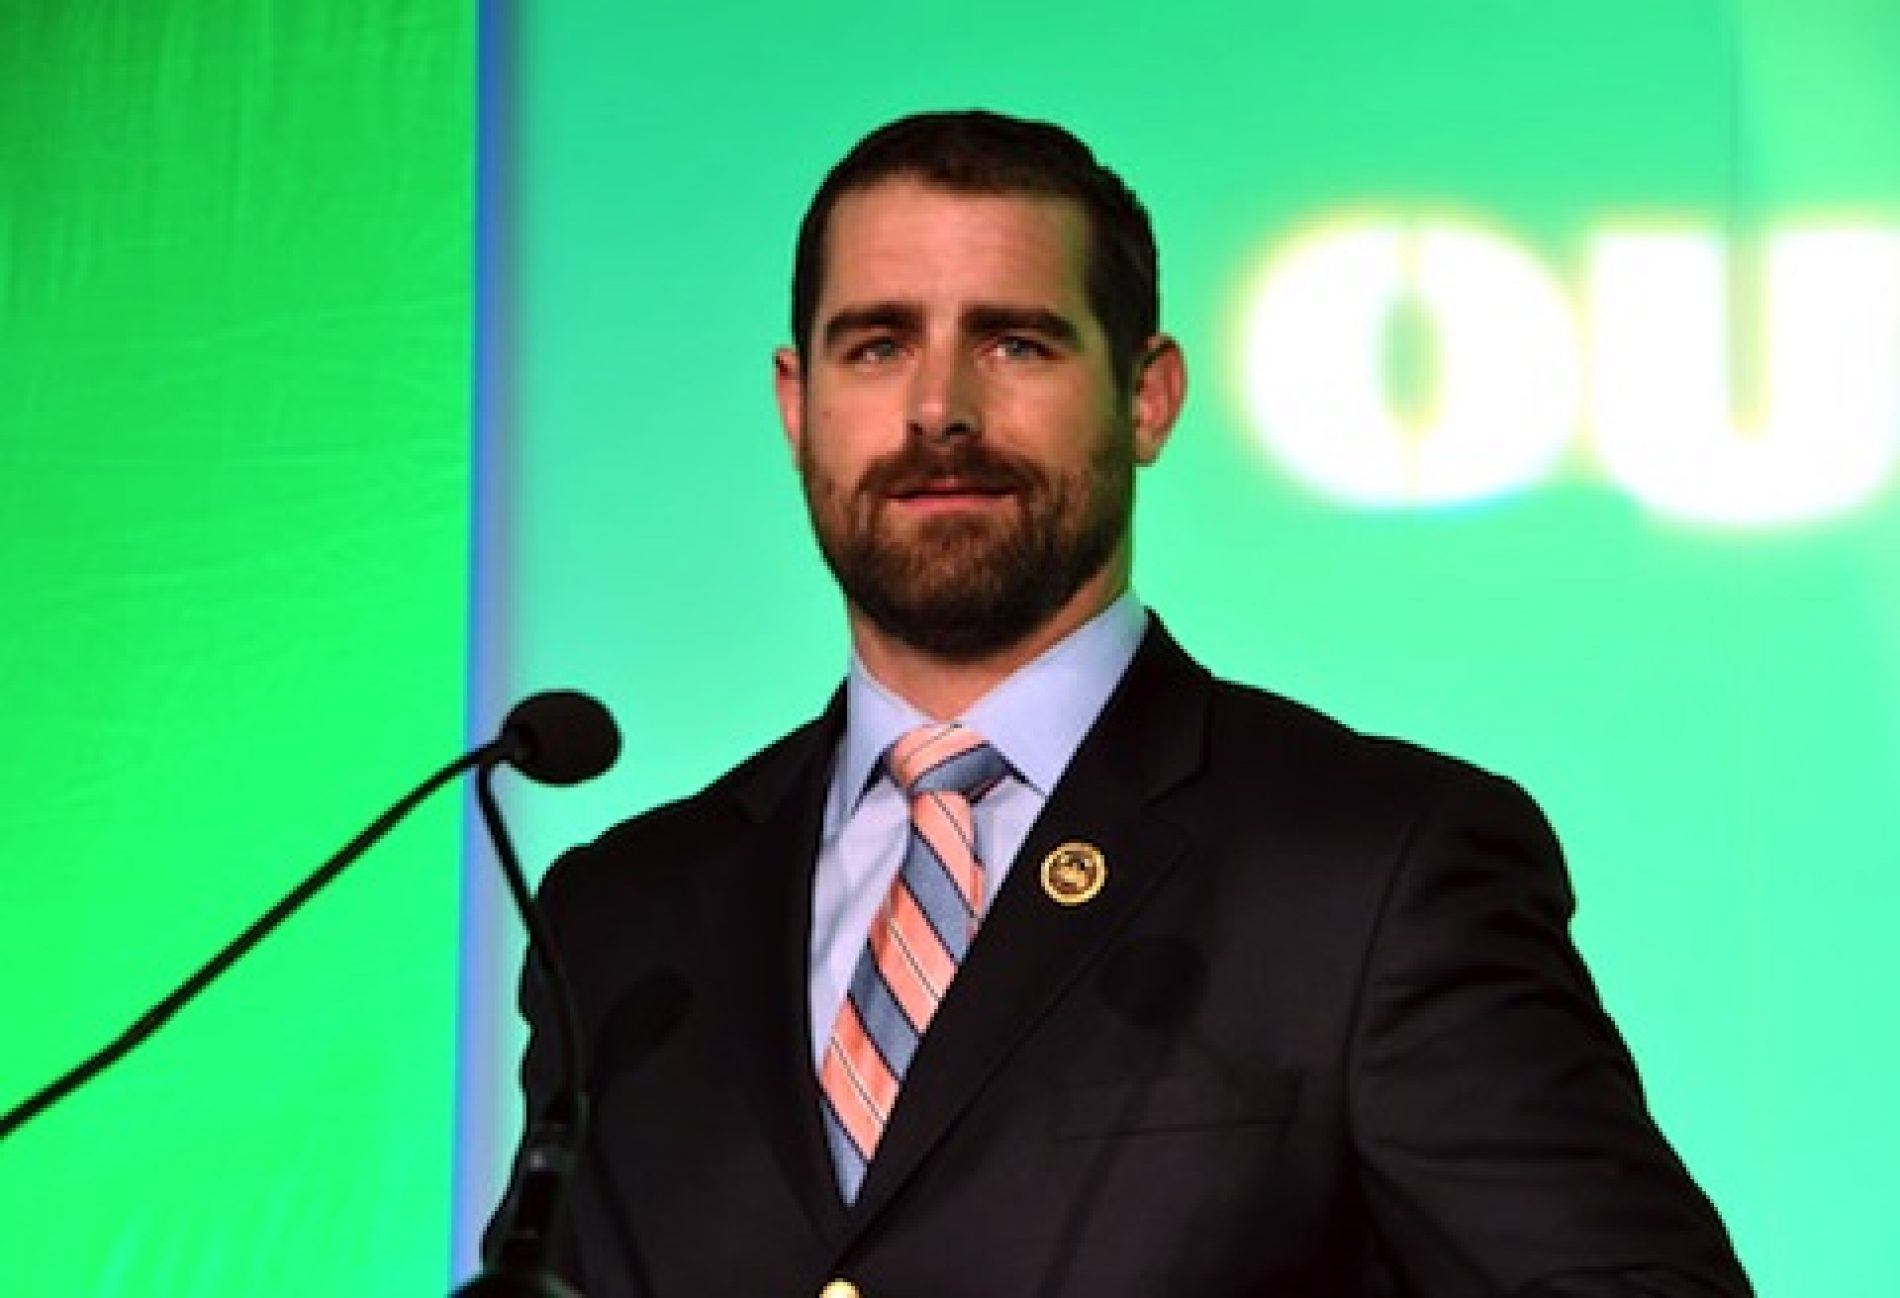 """Some of the most intense misogyny I see comes from gay men."" LGBT Rep. Brian Sims says"